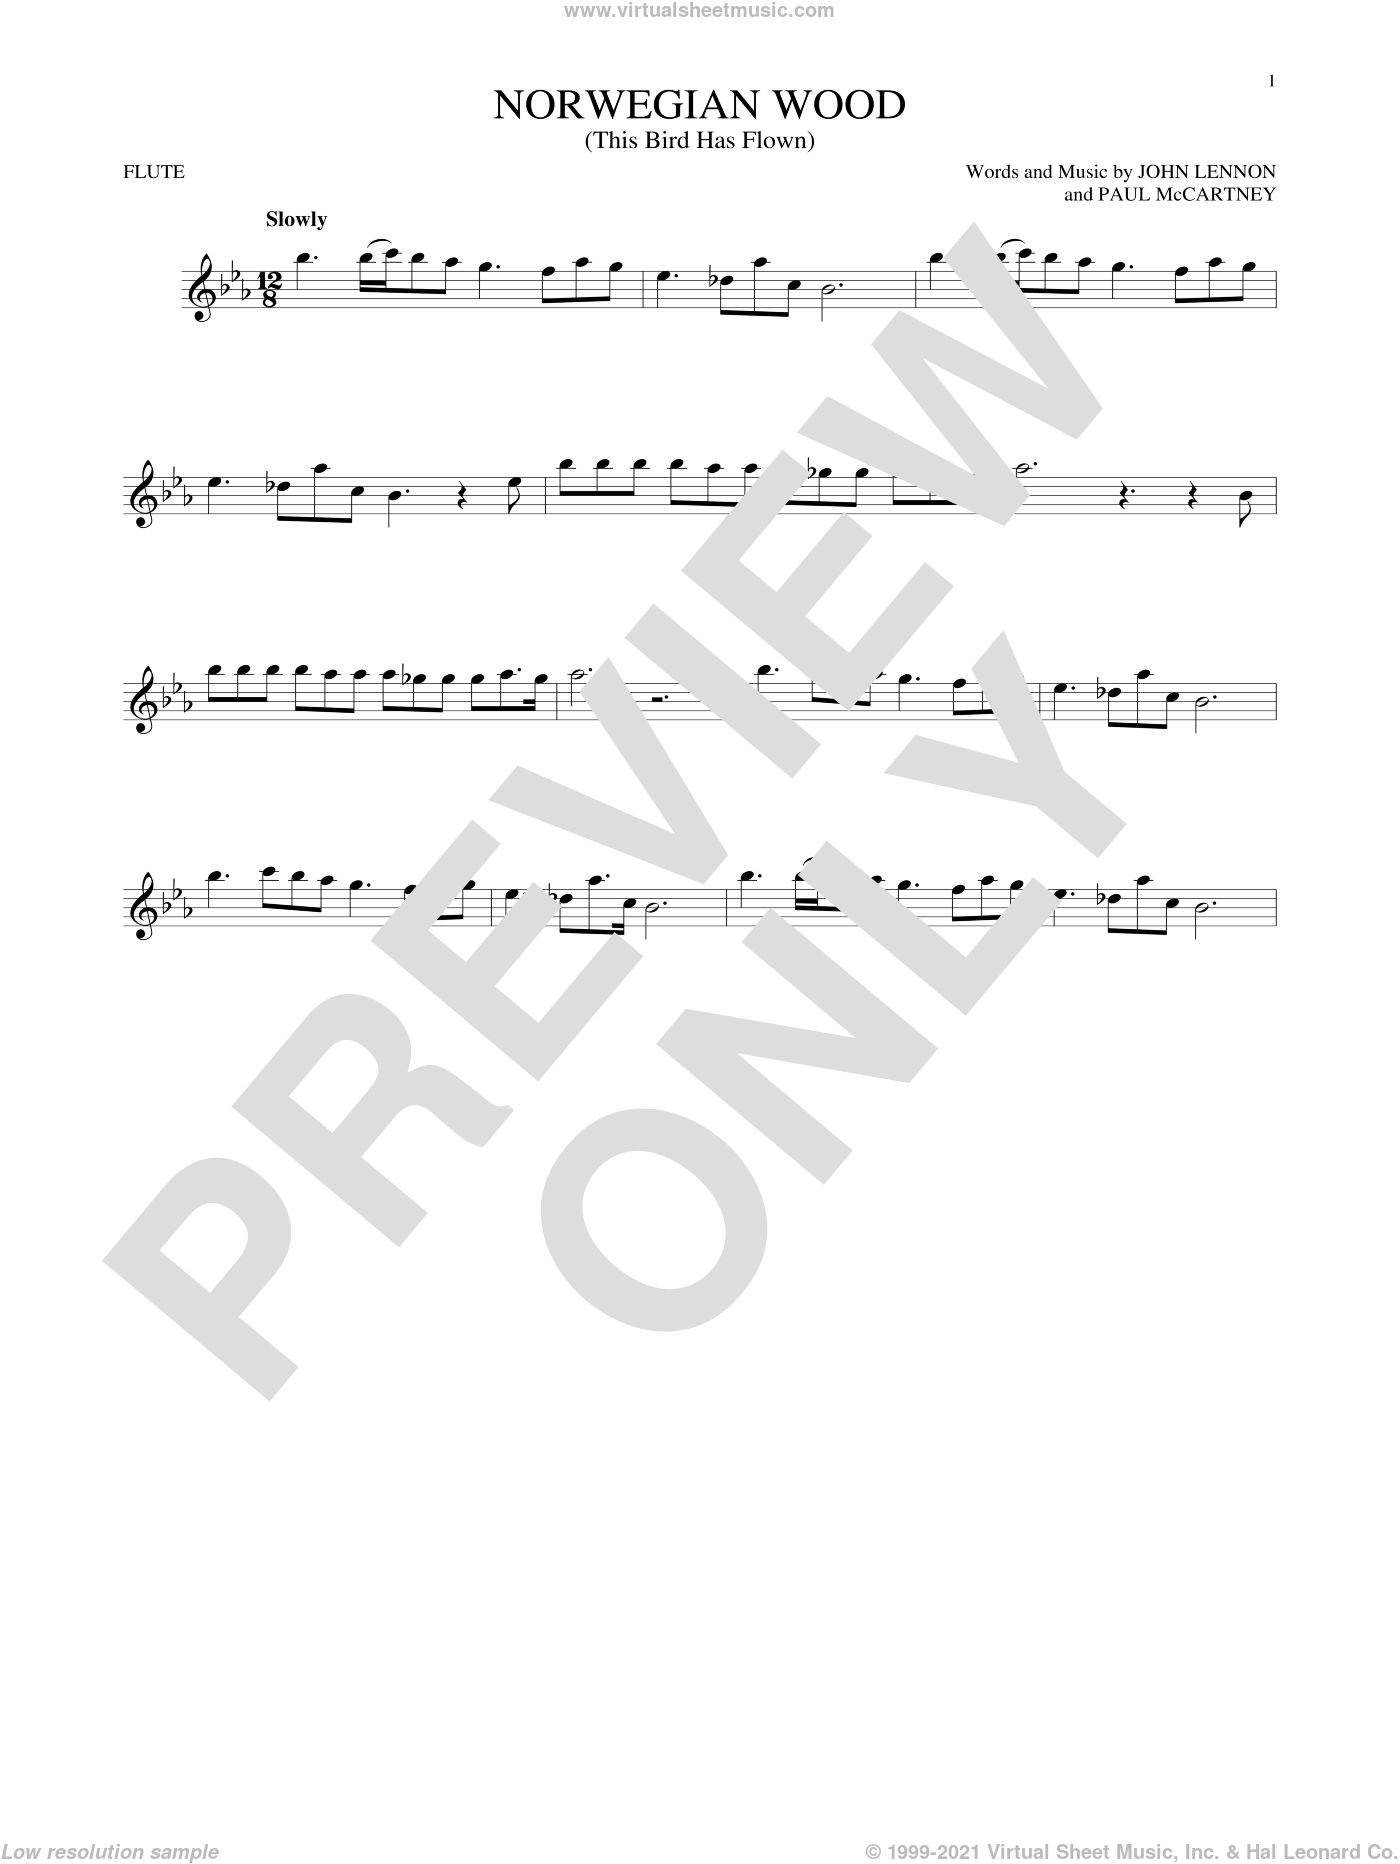 Norwegian Wood (This Bird Has Flown) sheet music for flute solo by The Beatles, John Lennon and Paul McCartney. Score Image Preview.